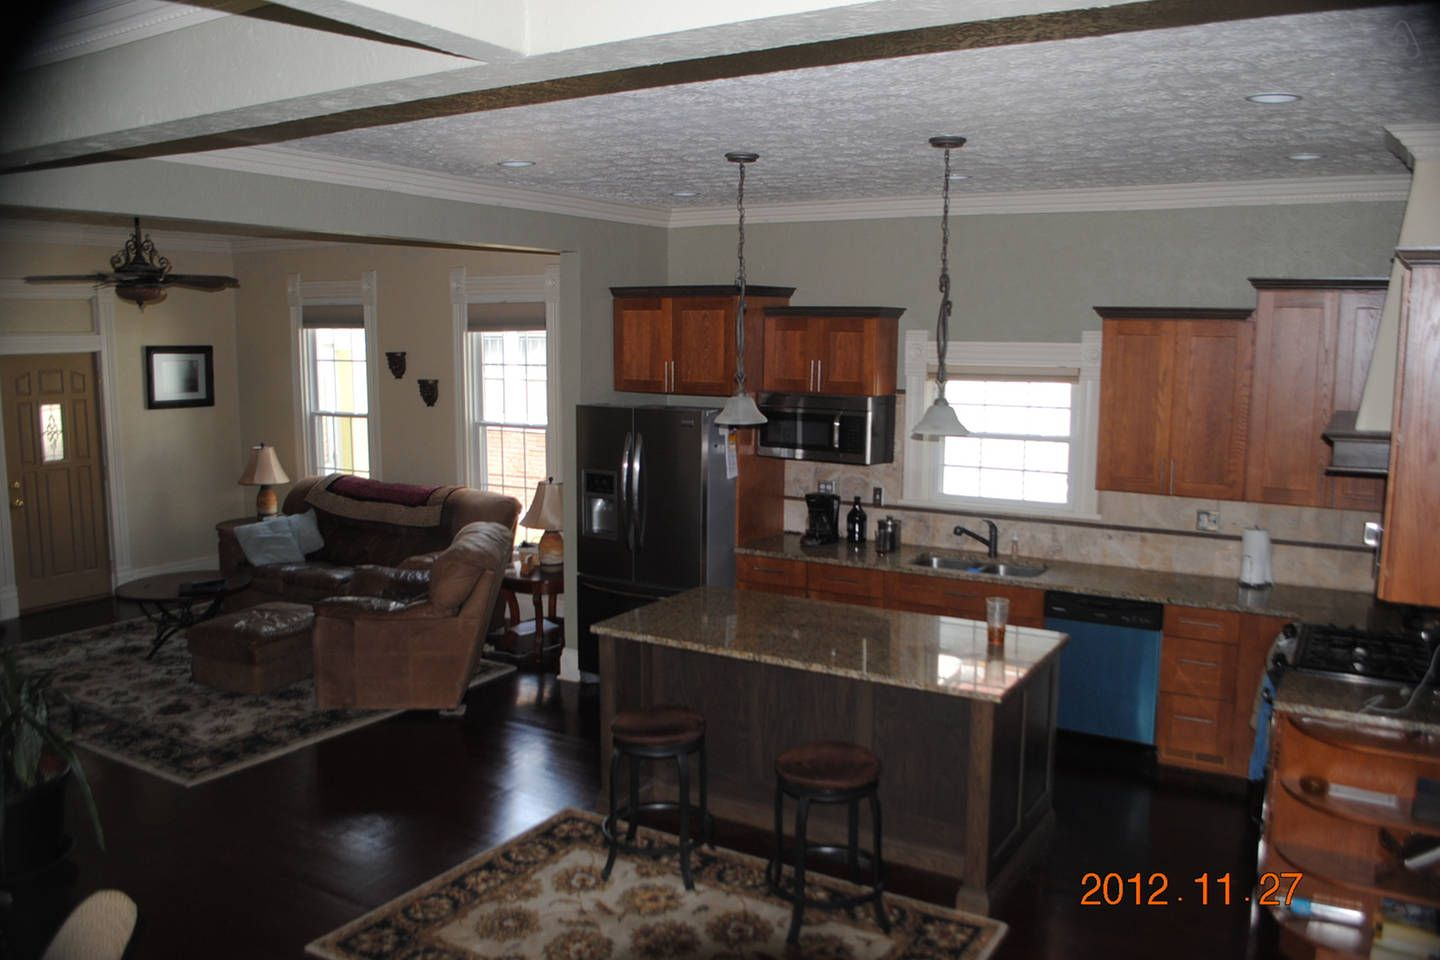 Perfect home for any occasion! - vacation rental in Indianapolis, Indiana. View more: #IndianapolisIndianaVacationRentals